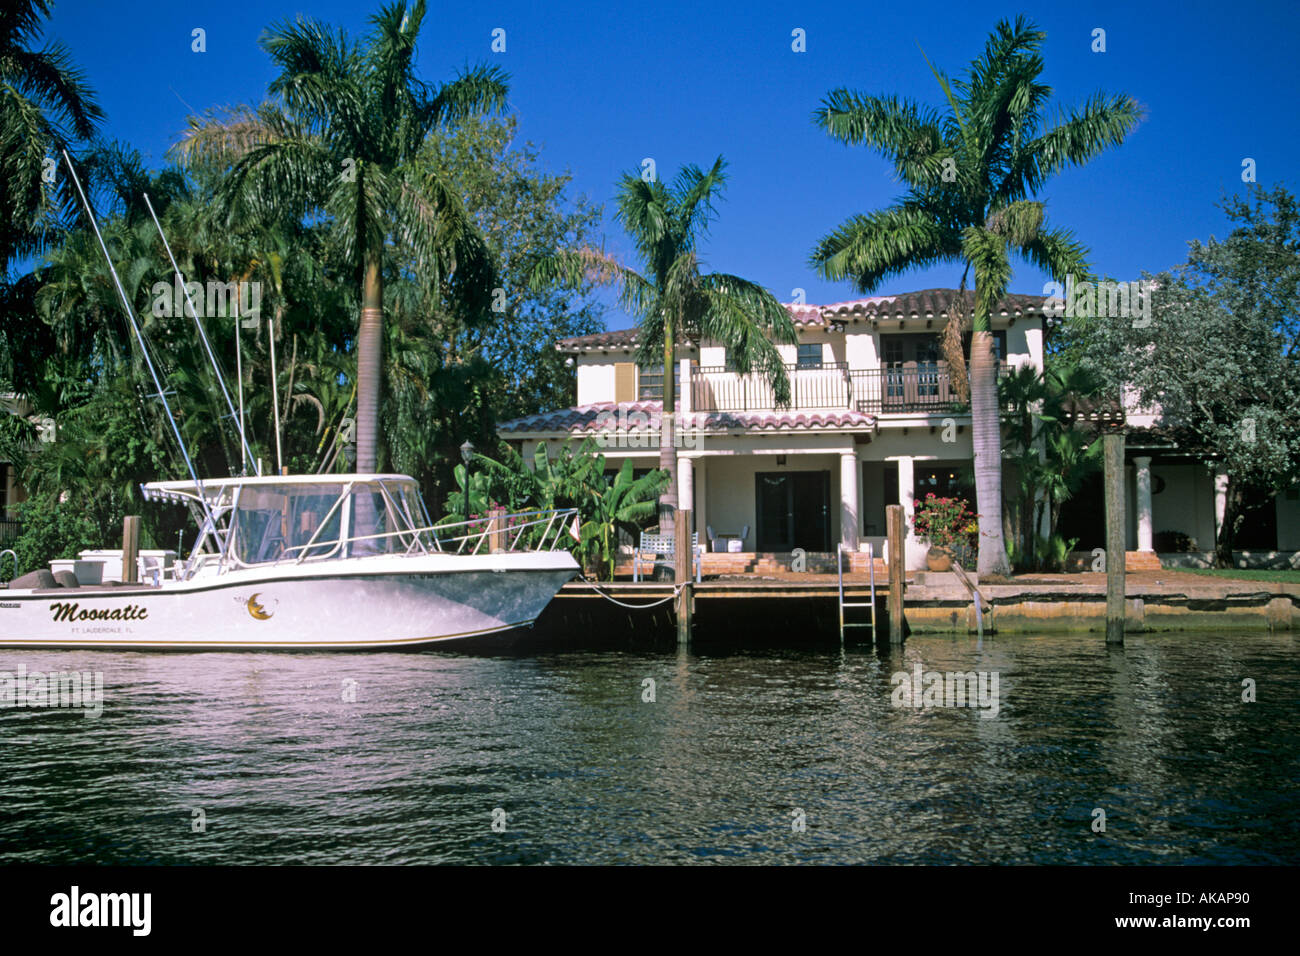 Luxury Homes With Yacht Moored In Inter Coastal Waterway Fort Lauderdale  Florida USA